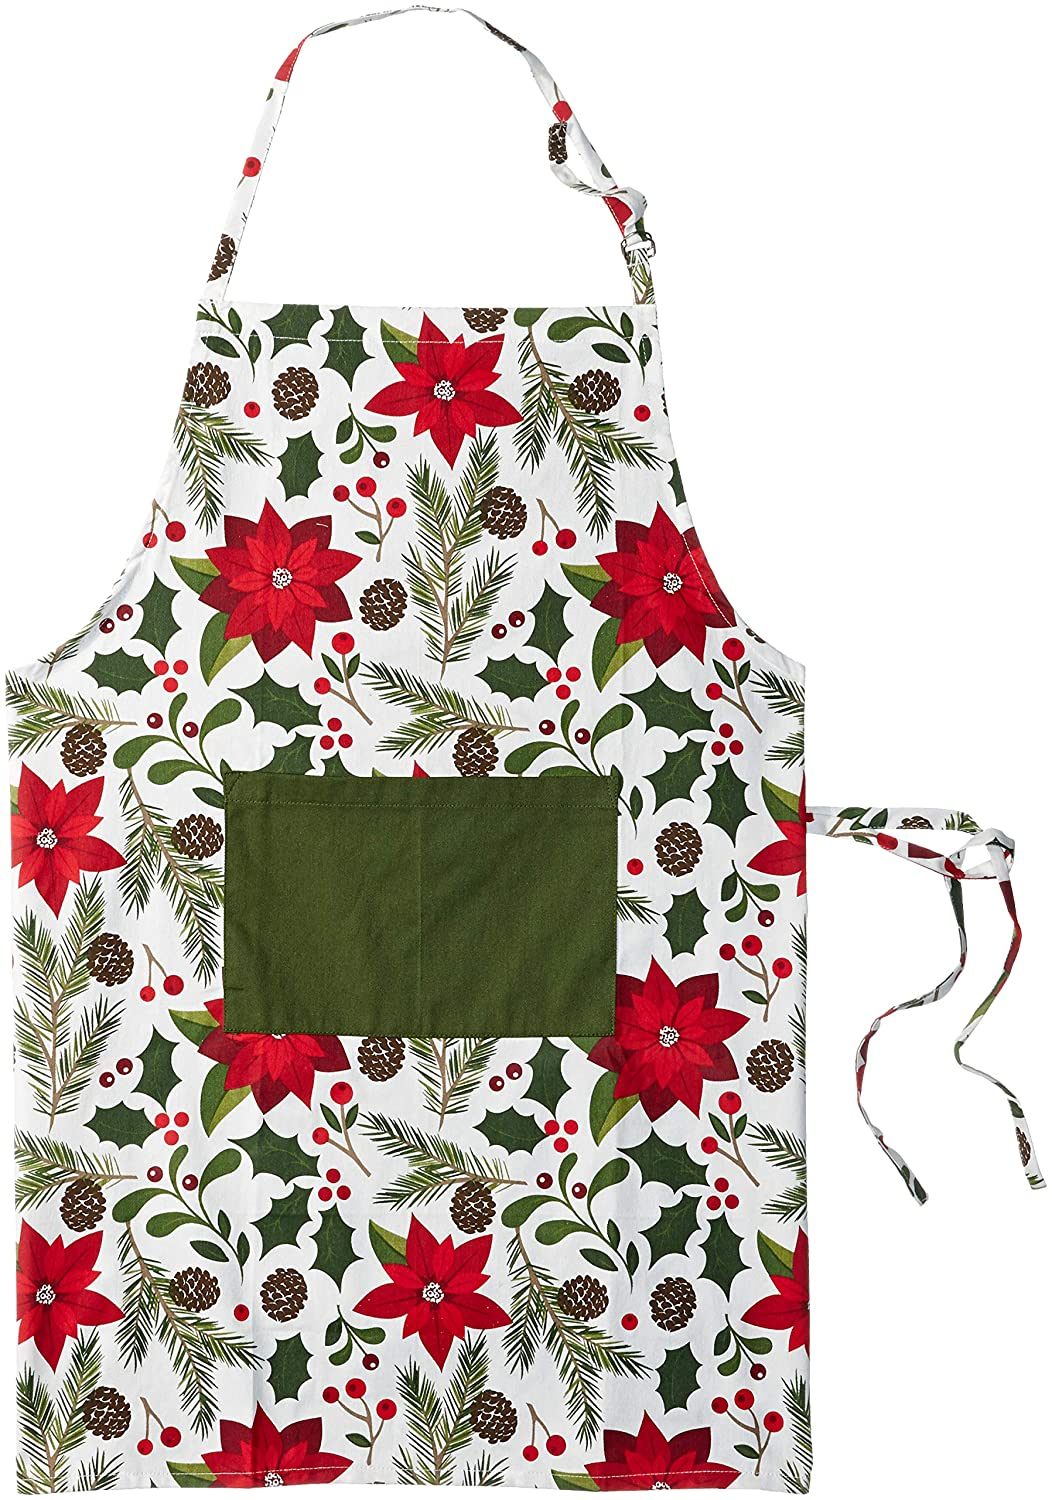 fdfb83cfc5bf DII Cotton Adjustable Christmas Holiday Kitchen Apron with Pocket and Extra  Long Ties, Men & Women Chef Apron for Cooking, Baking, Crafting,  BBQ-Woodland